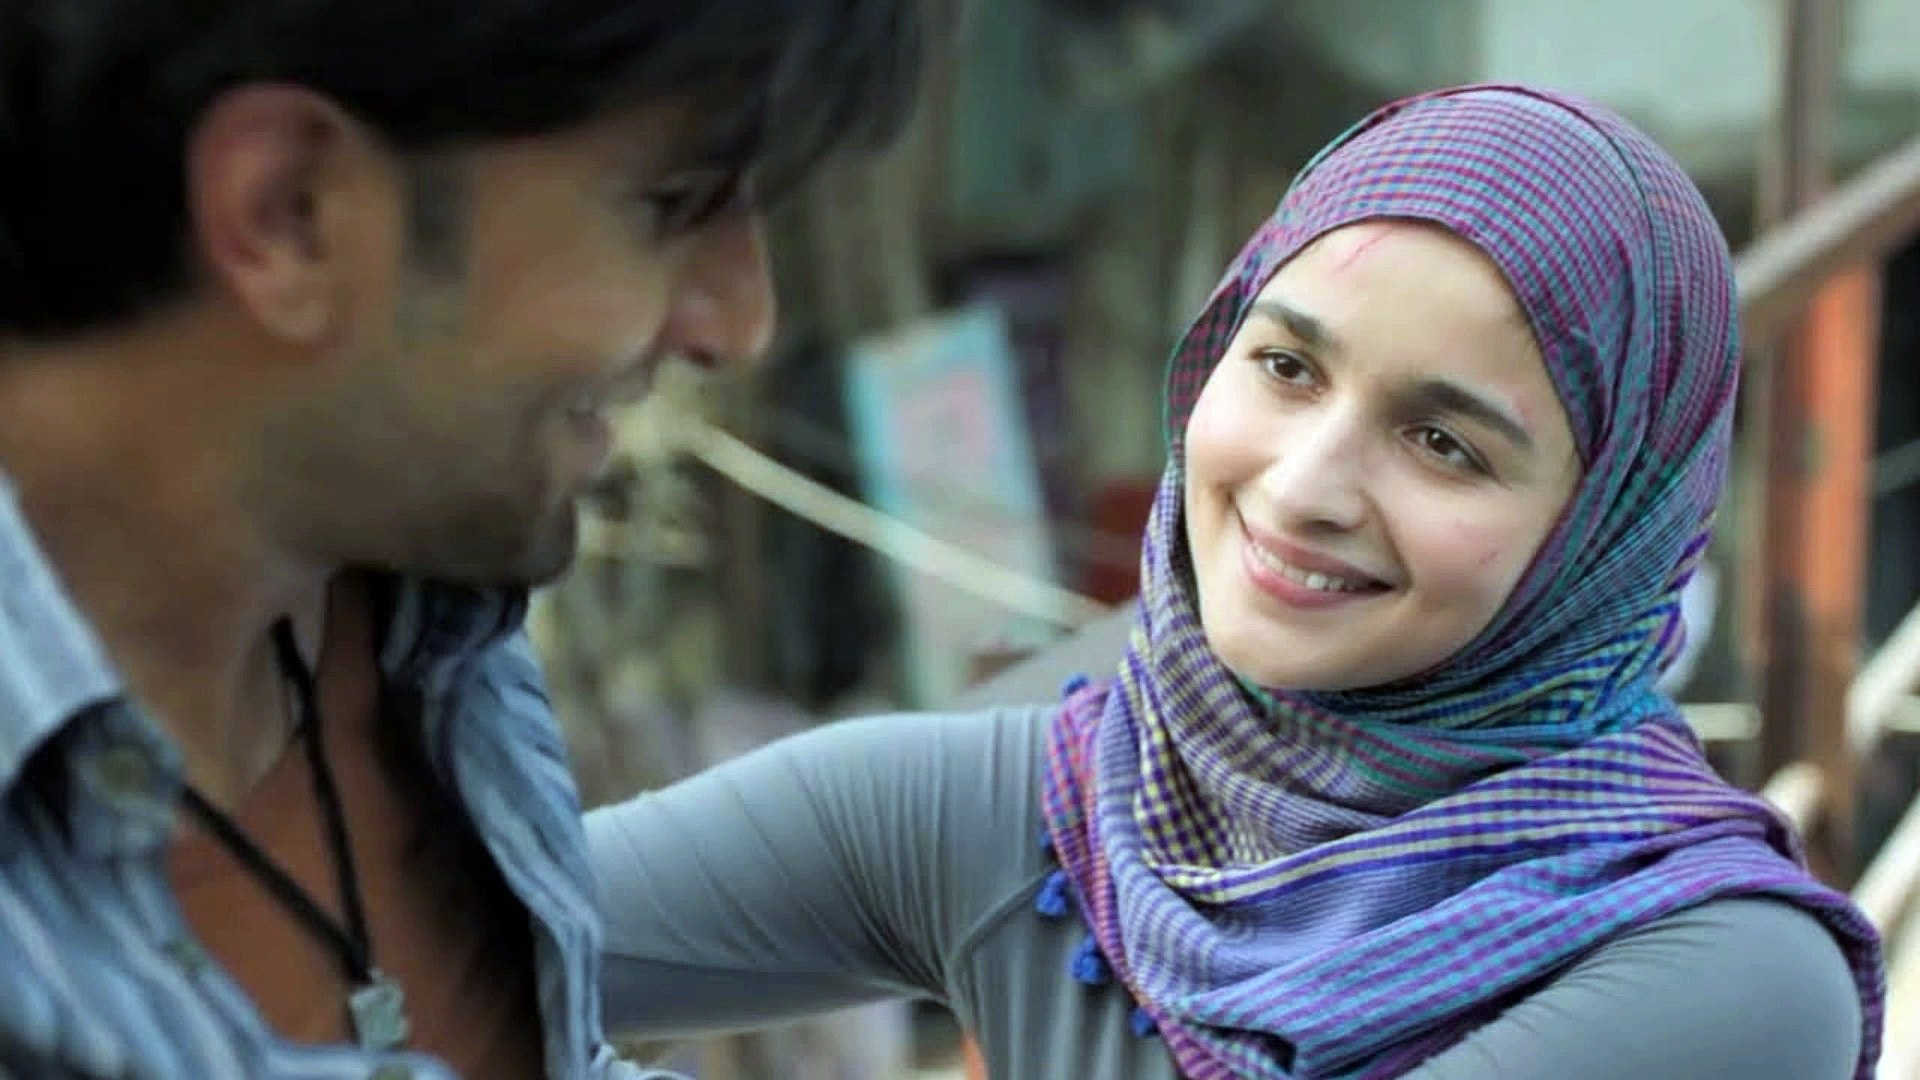 Alia Bhatt is fiesty, fierce and fabulous in  Gully Boy